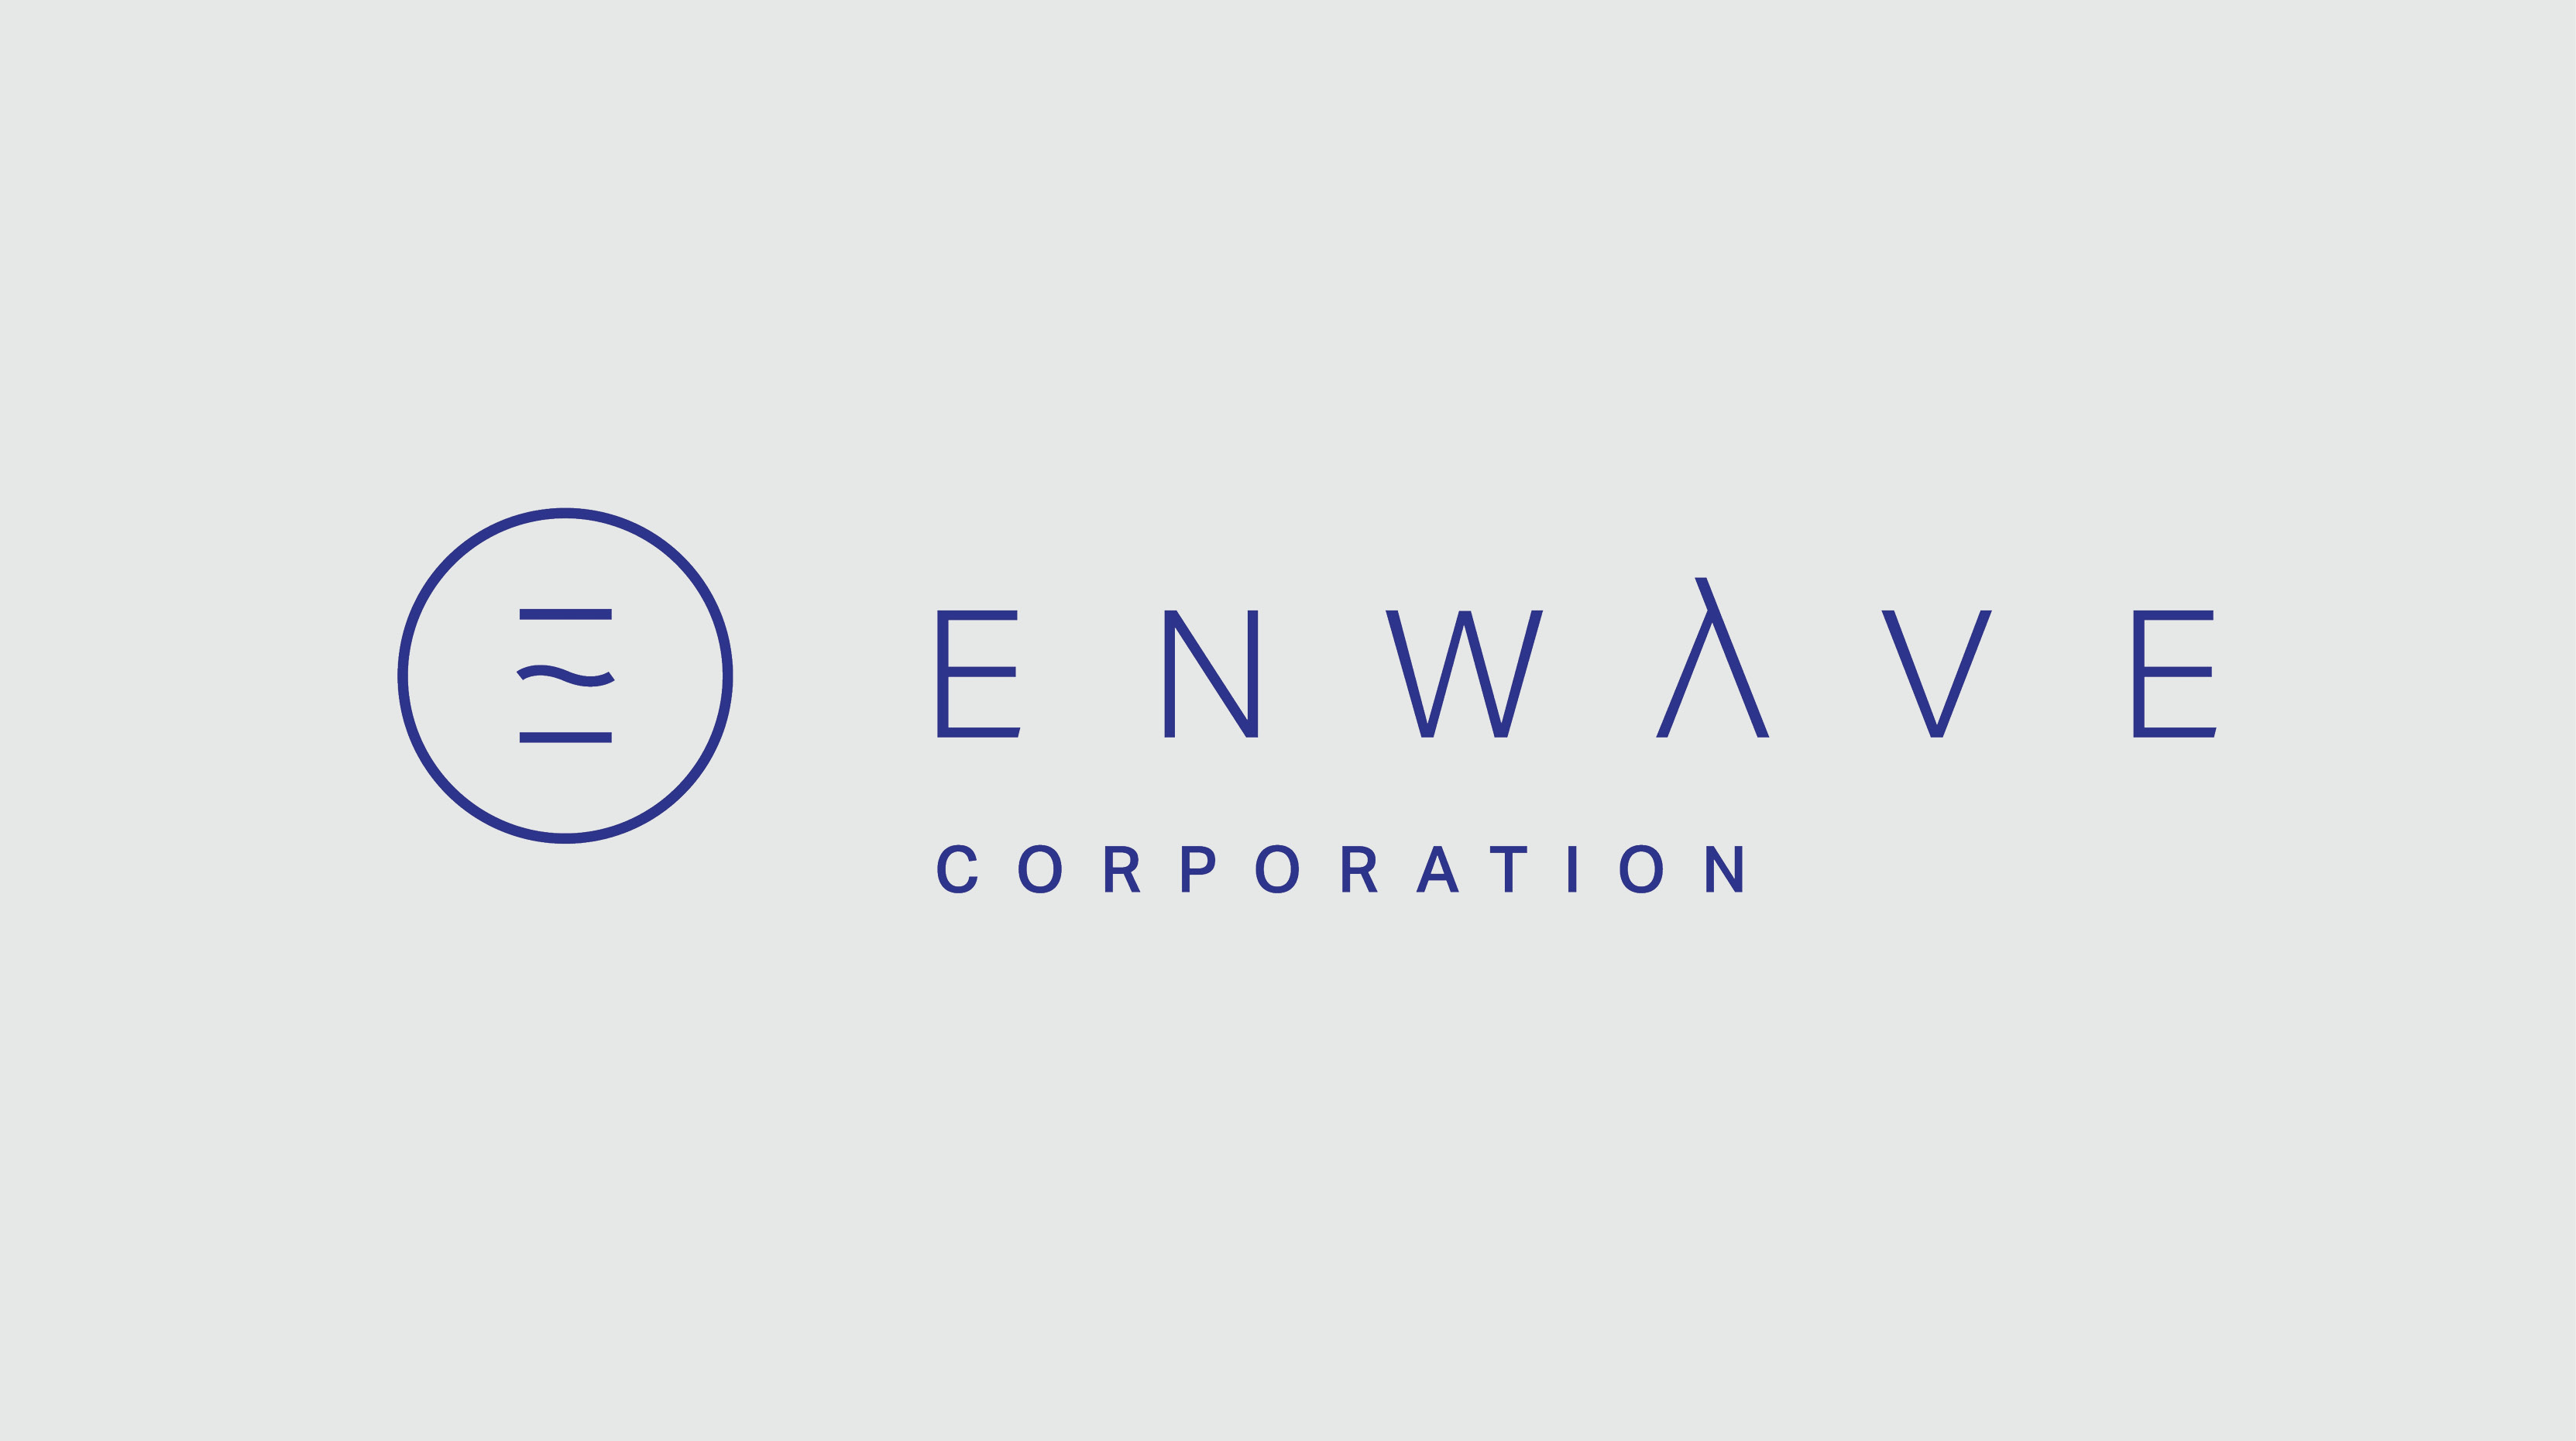 EnWave Signs Second Equipment Purchase Agreement with Patata Torres to Increase REV™ Manufacturing Capacity by 100kW